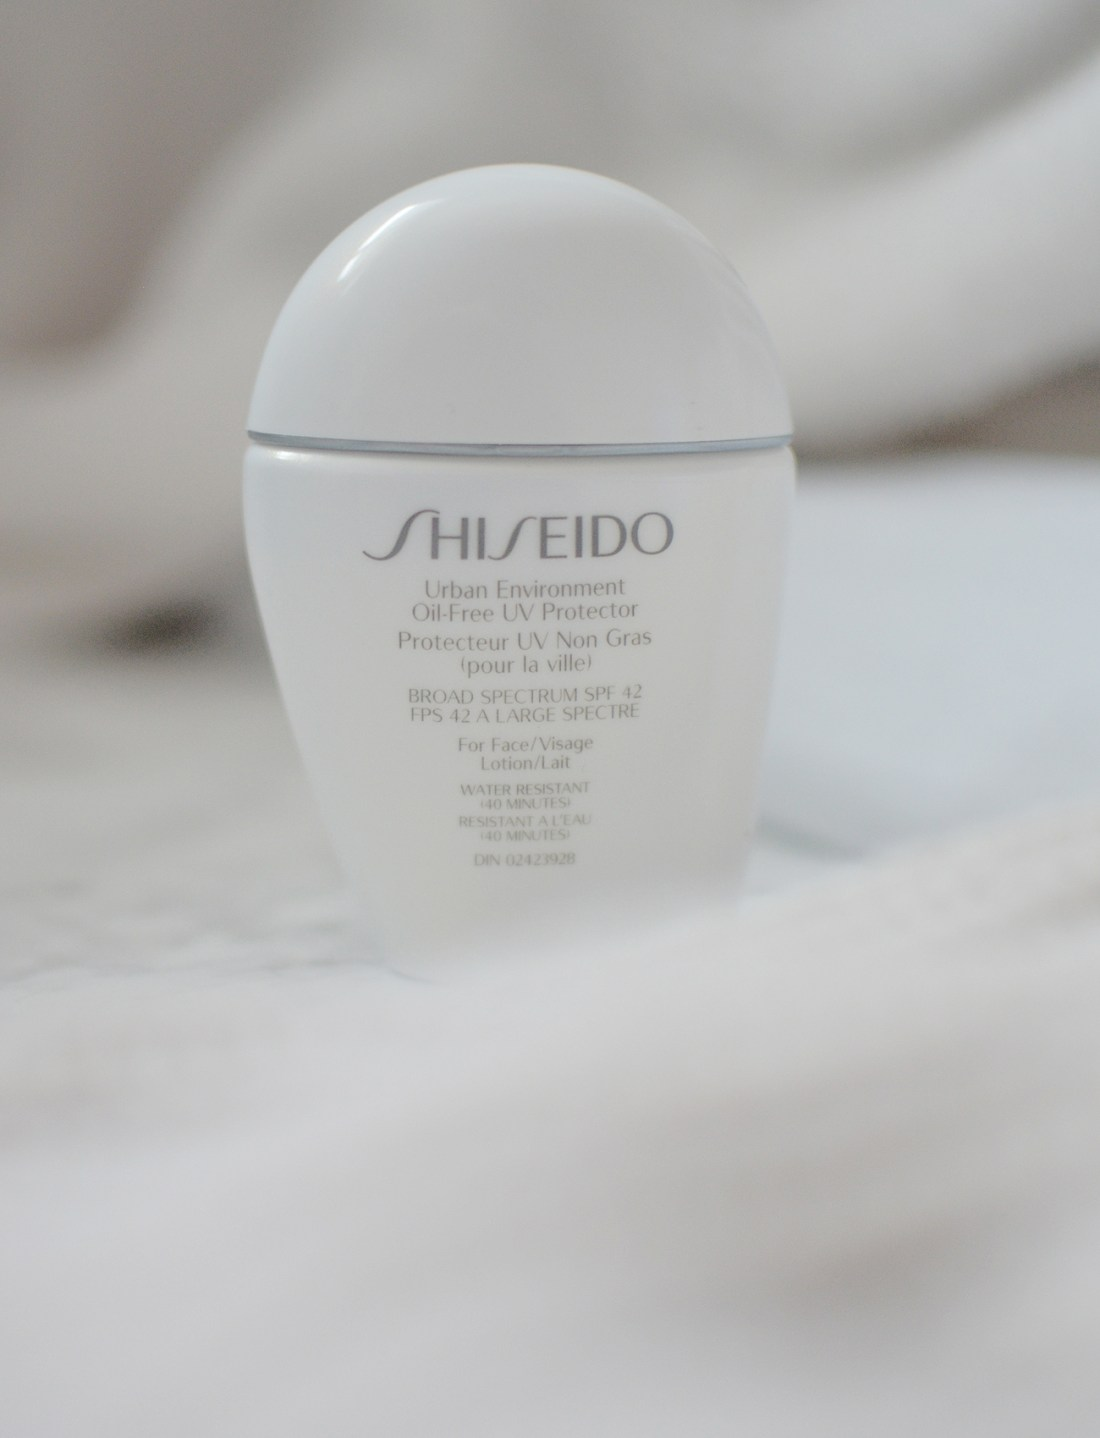 New for the summer is the Shiseido Urban Environment Oil-Free UV Proctector which is meant to protect the skin from pollution in addition to the sun.